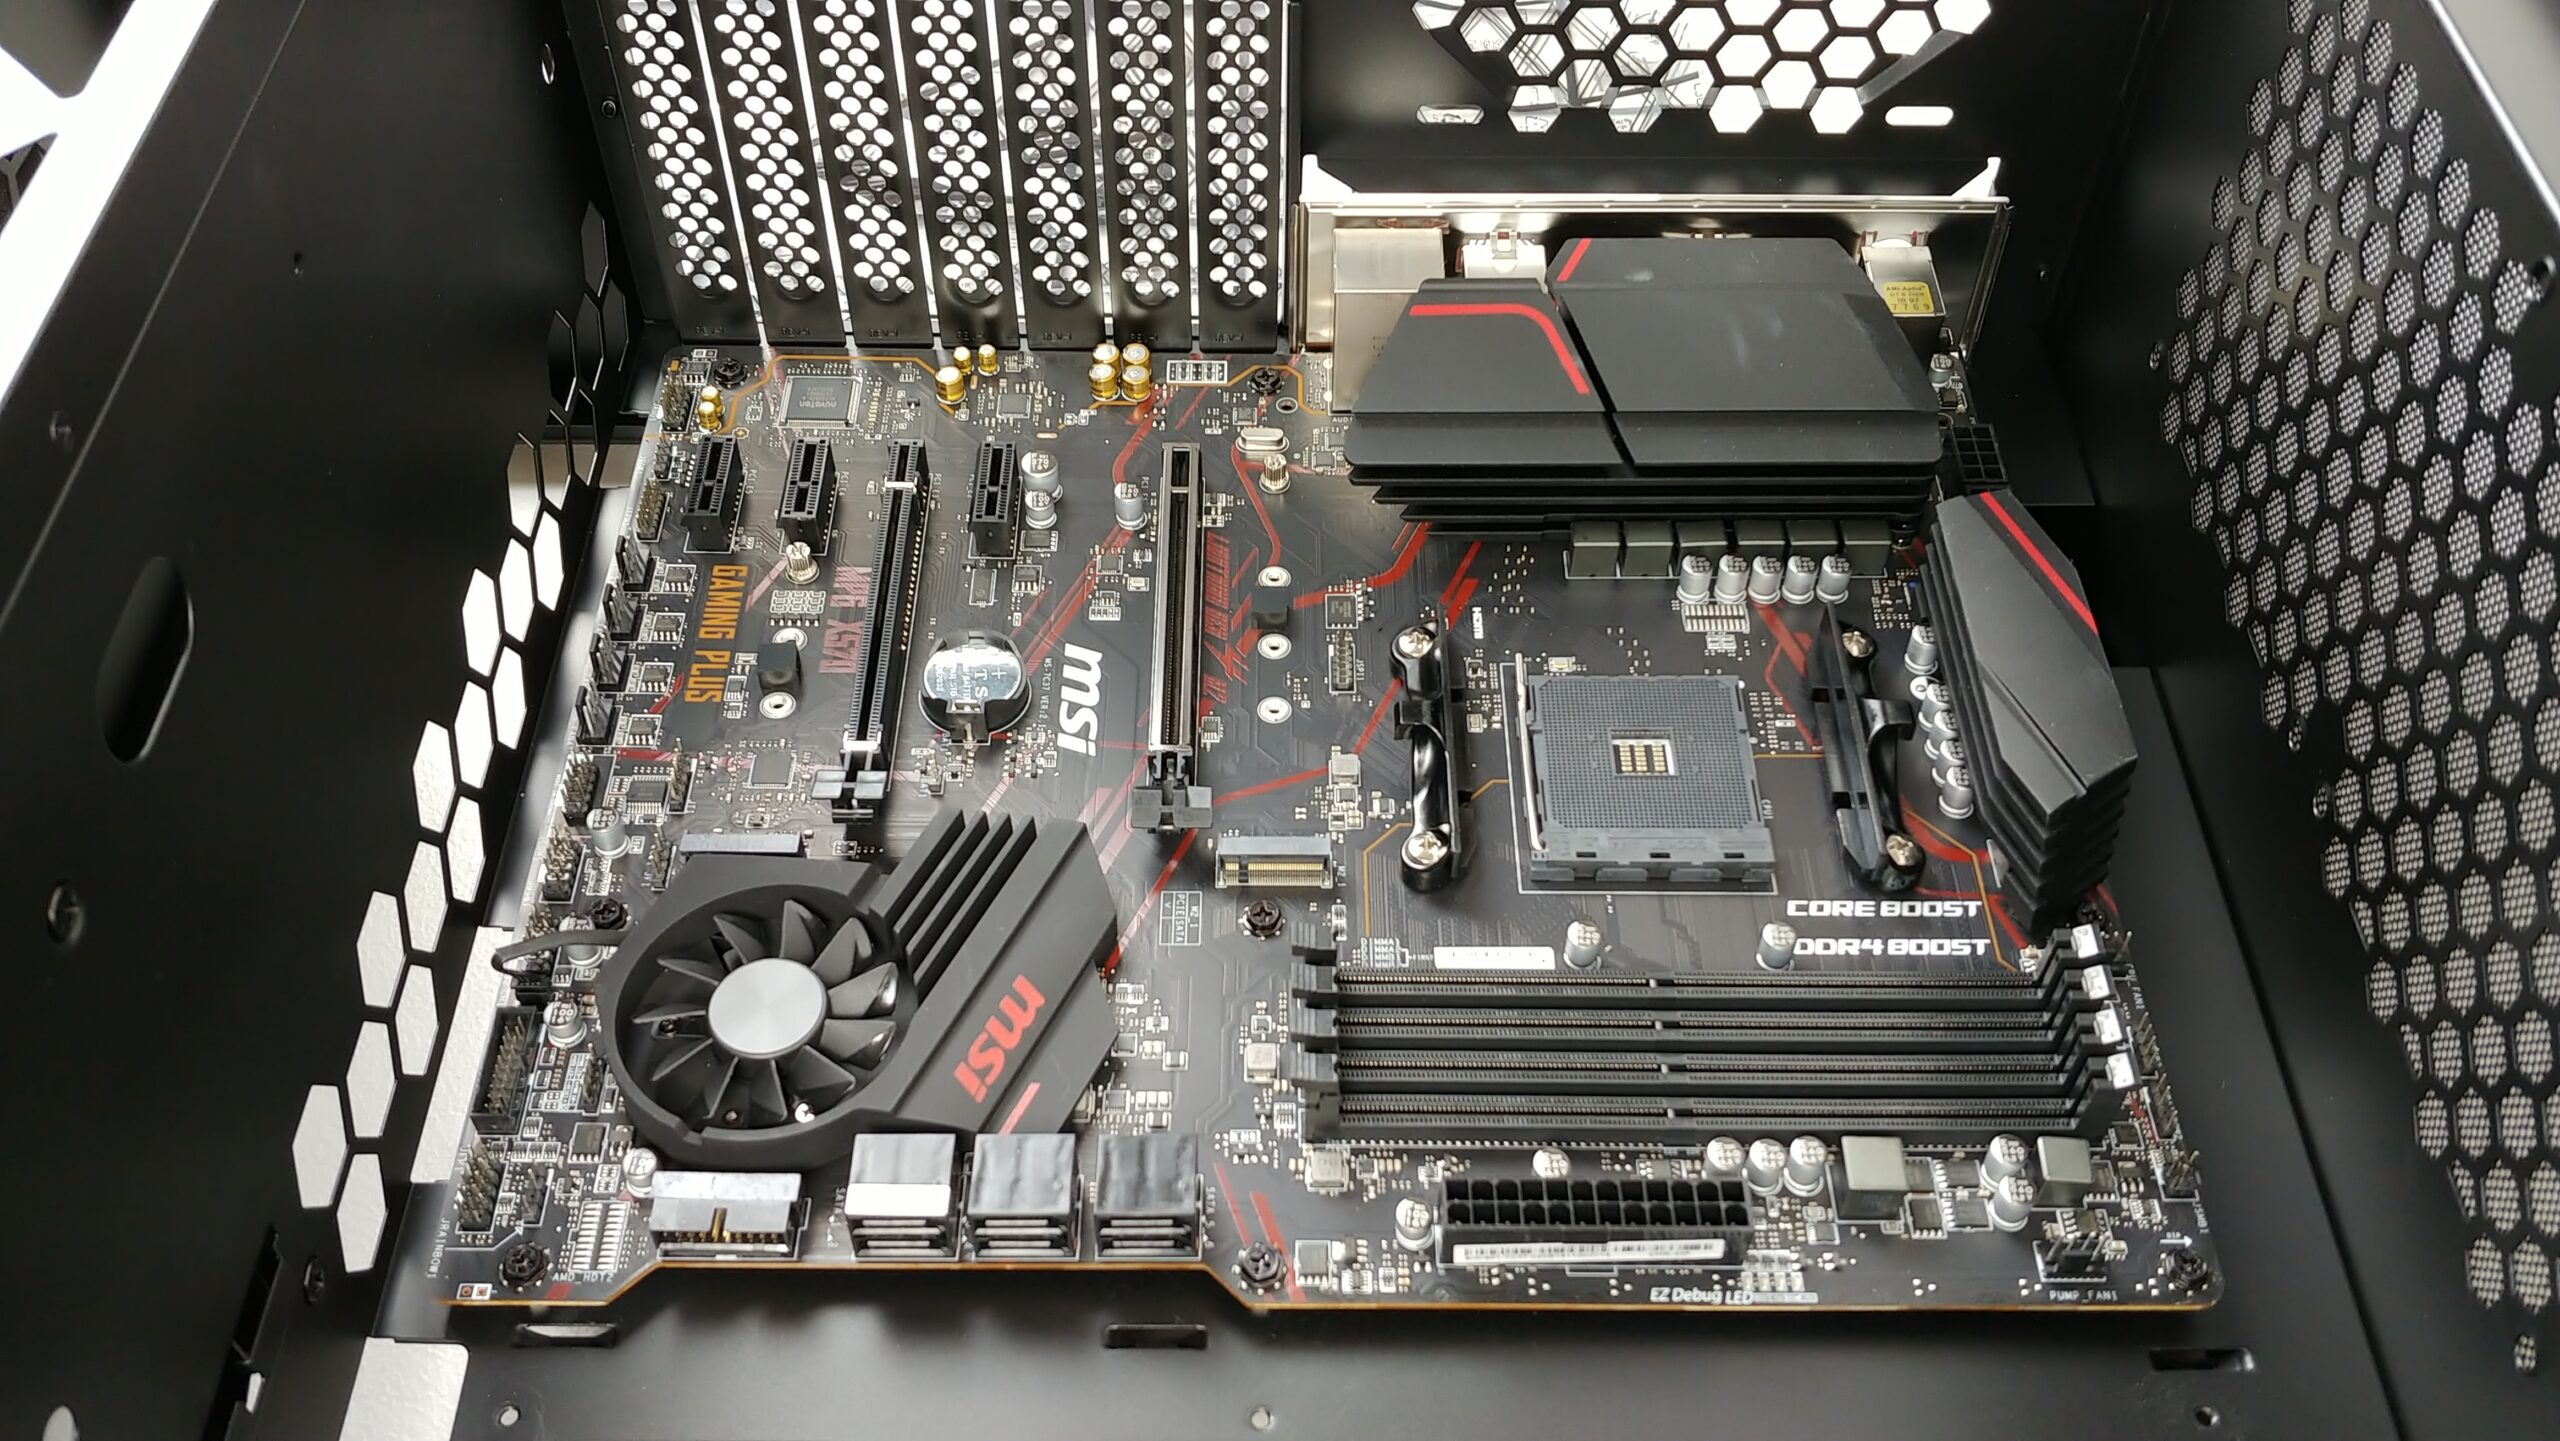 Angle view of the motherboard installed in the InWin 216.